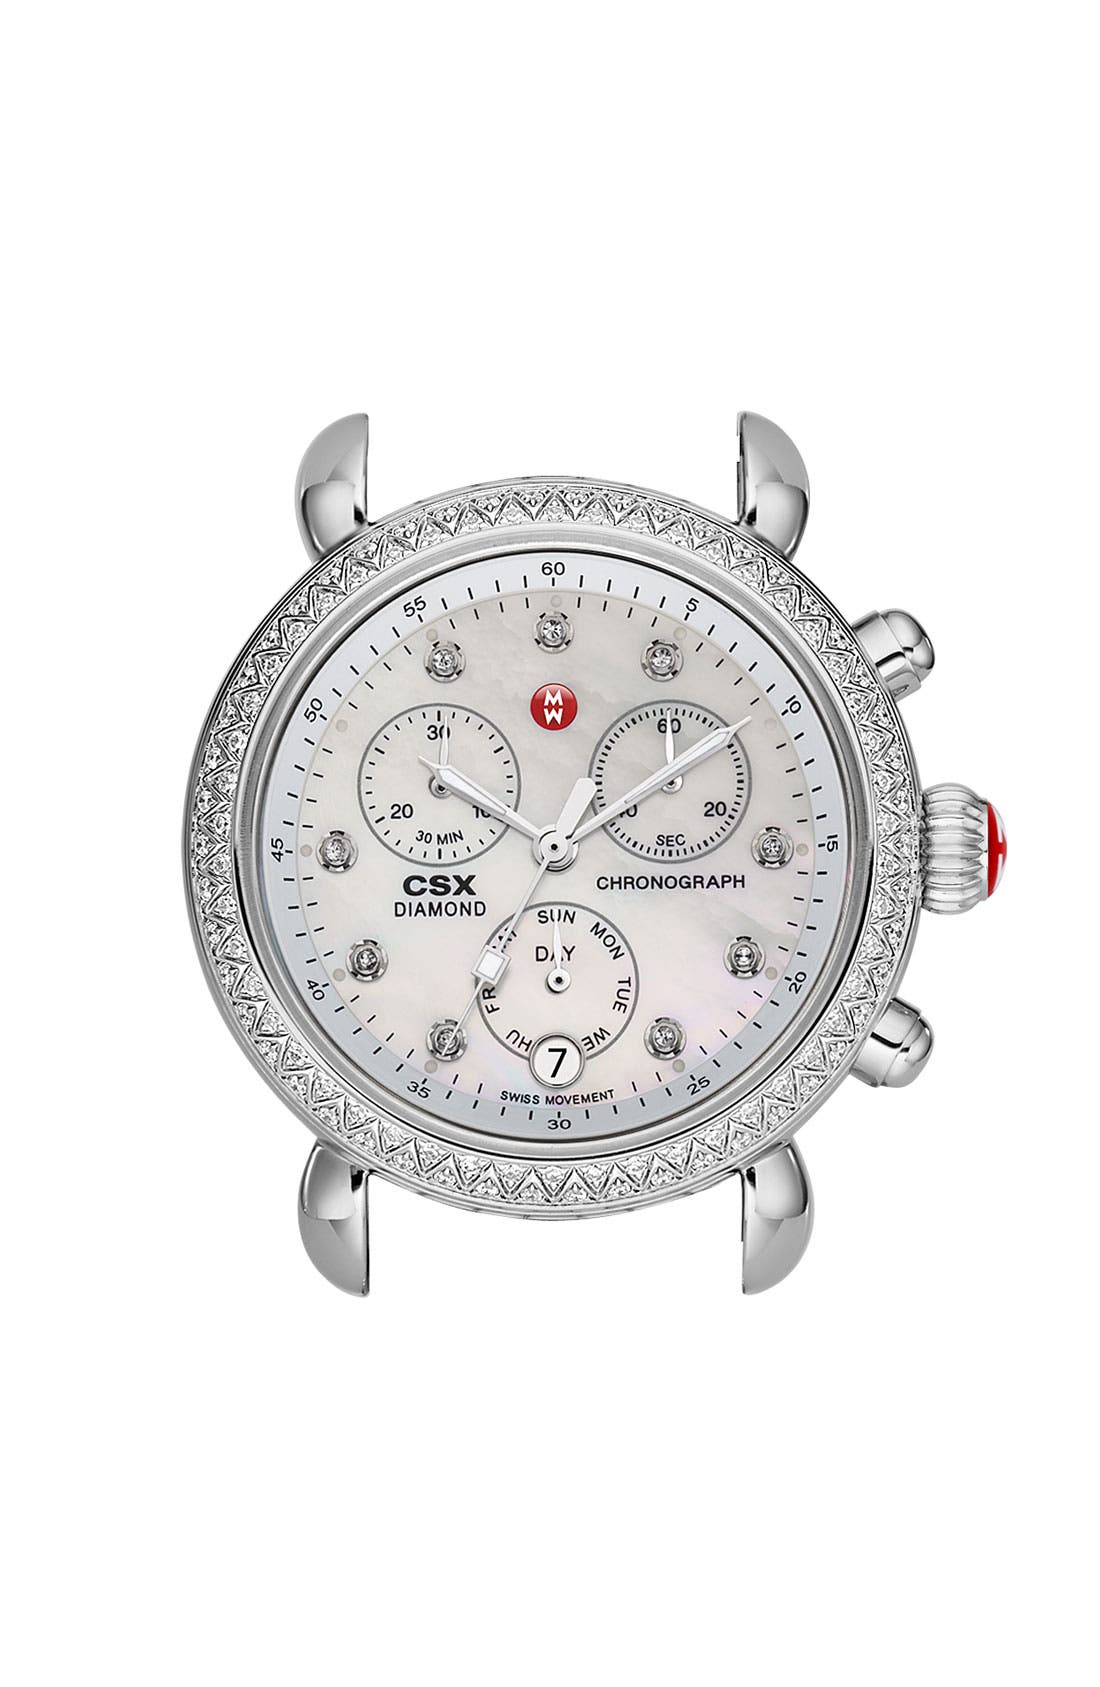 Main Image - MICHELE 'CSX-36 Diamond' Diamond Dial Two Tone Watch Case, 36mm